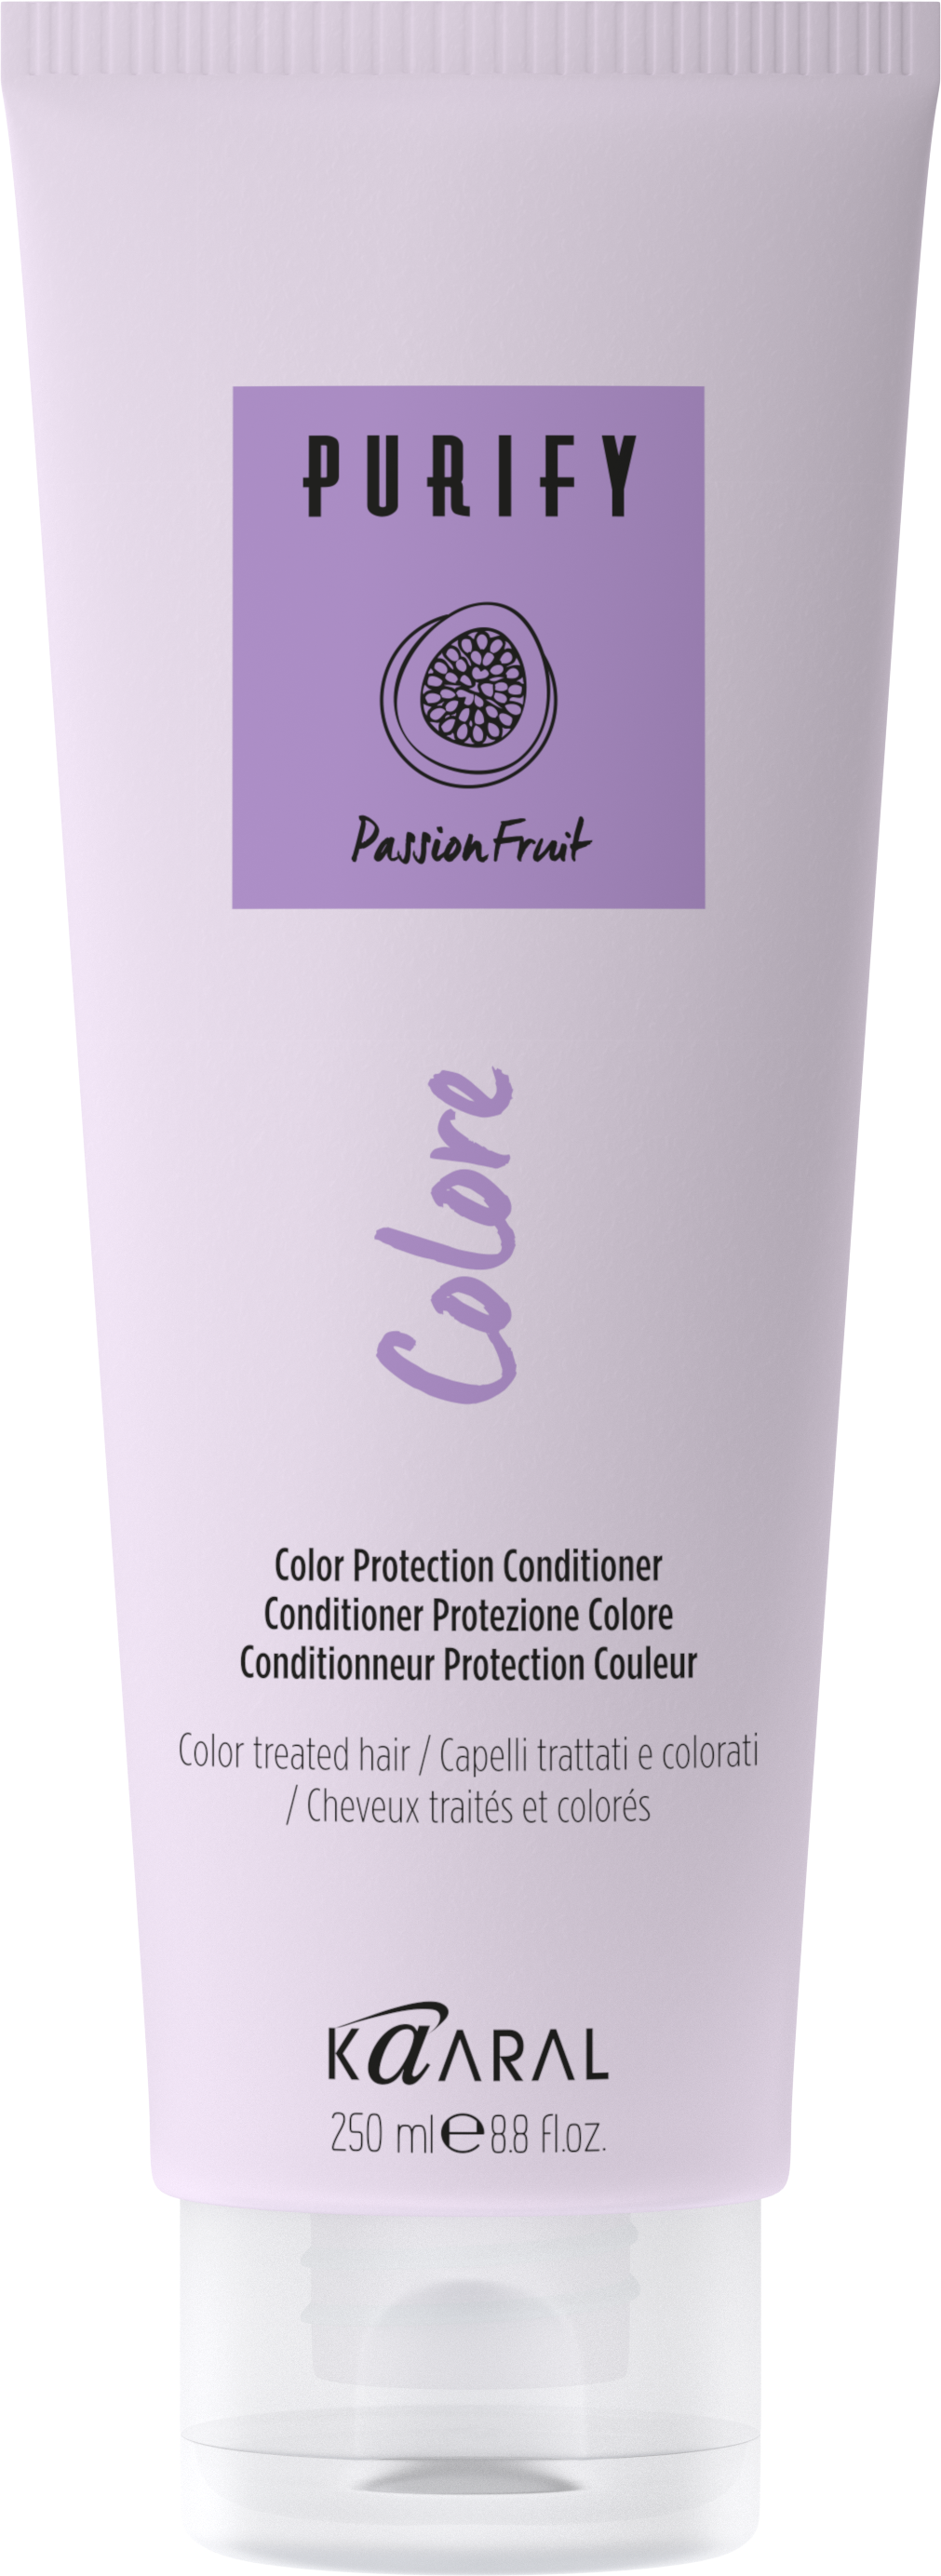 Colore Protection Conditioner